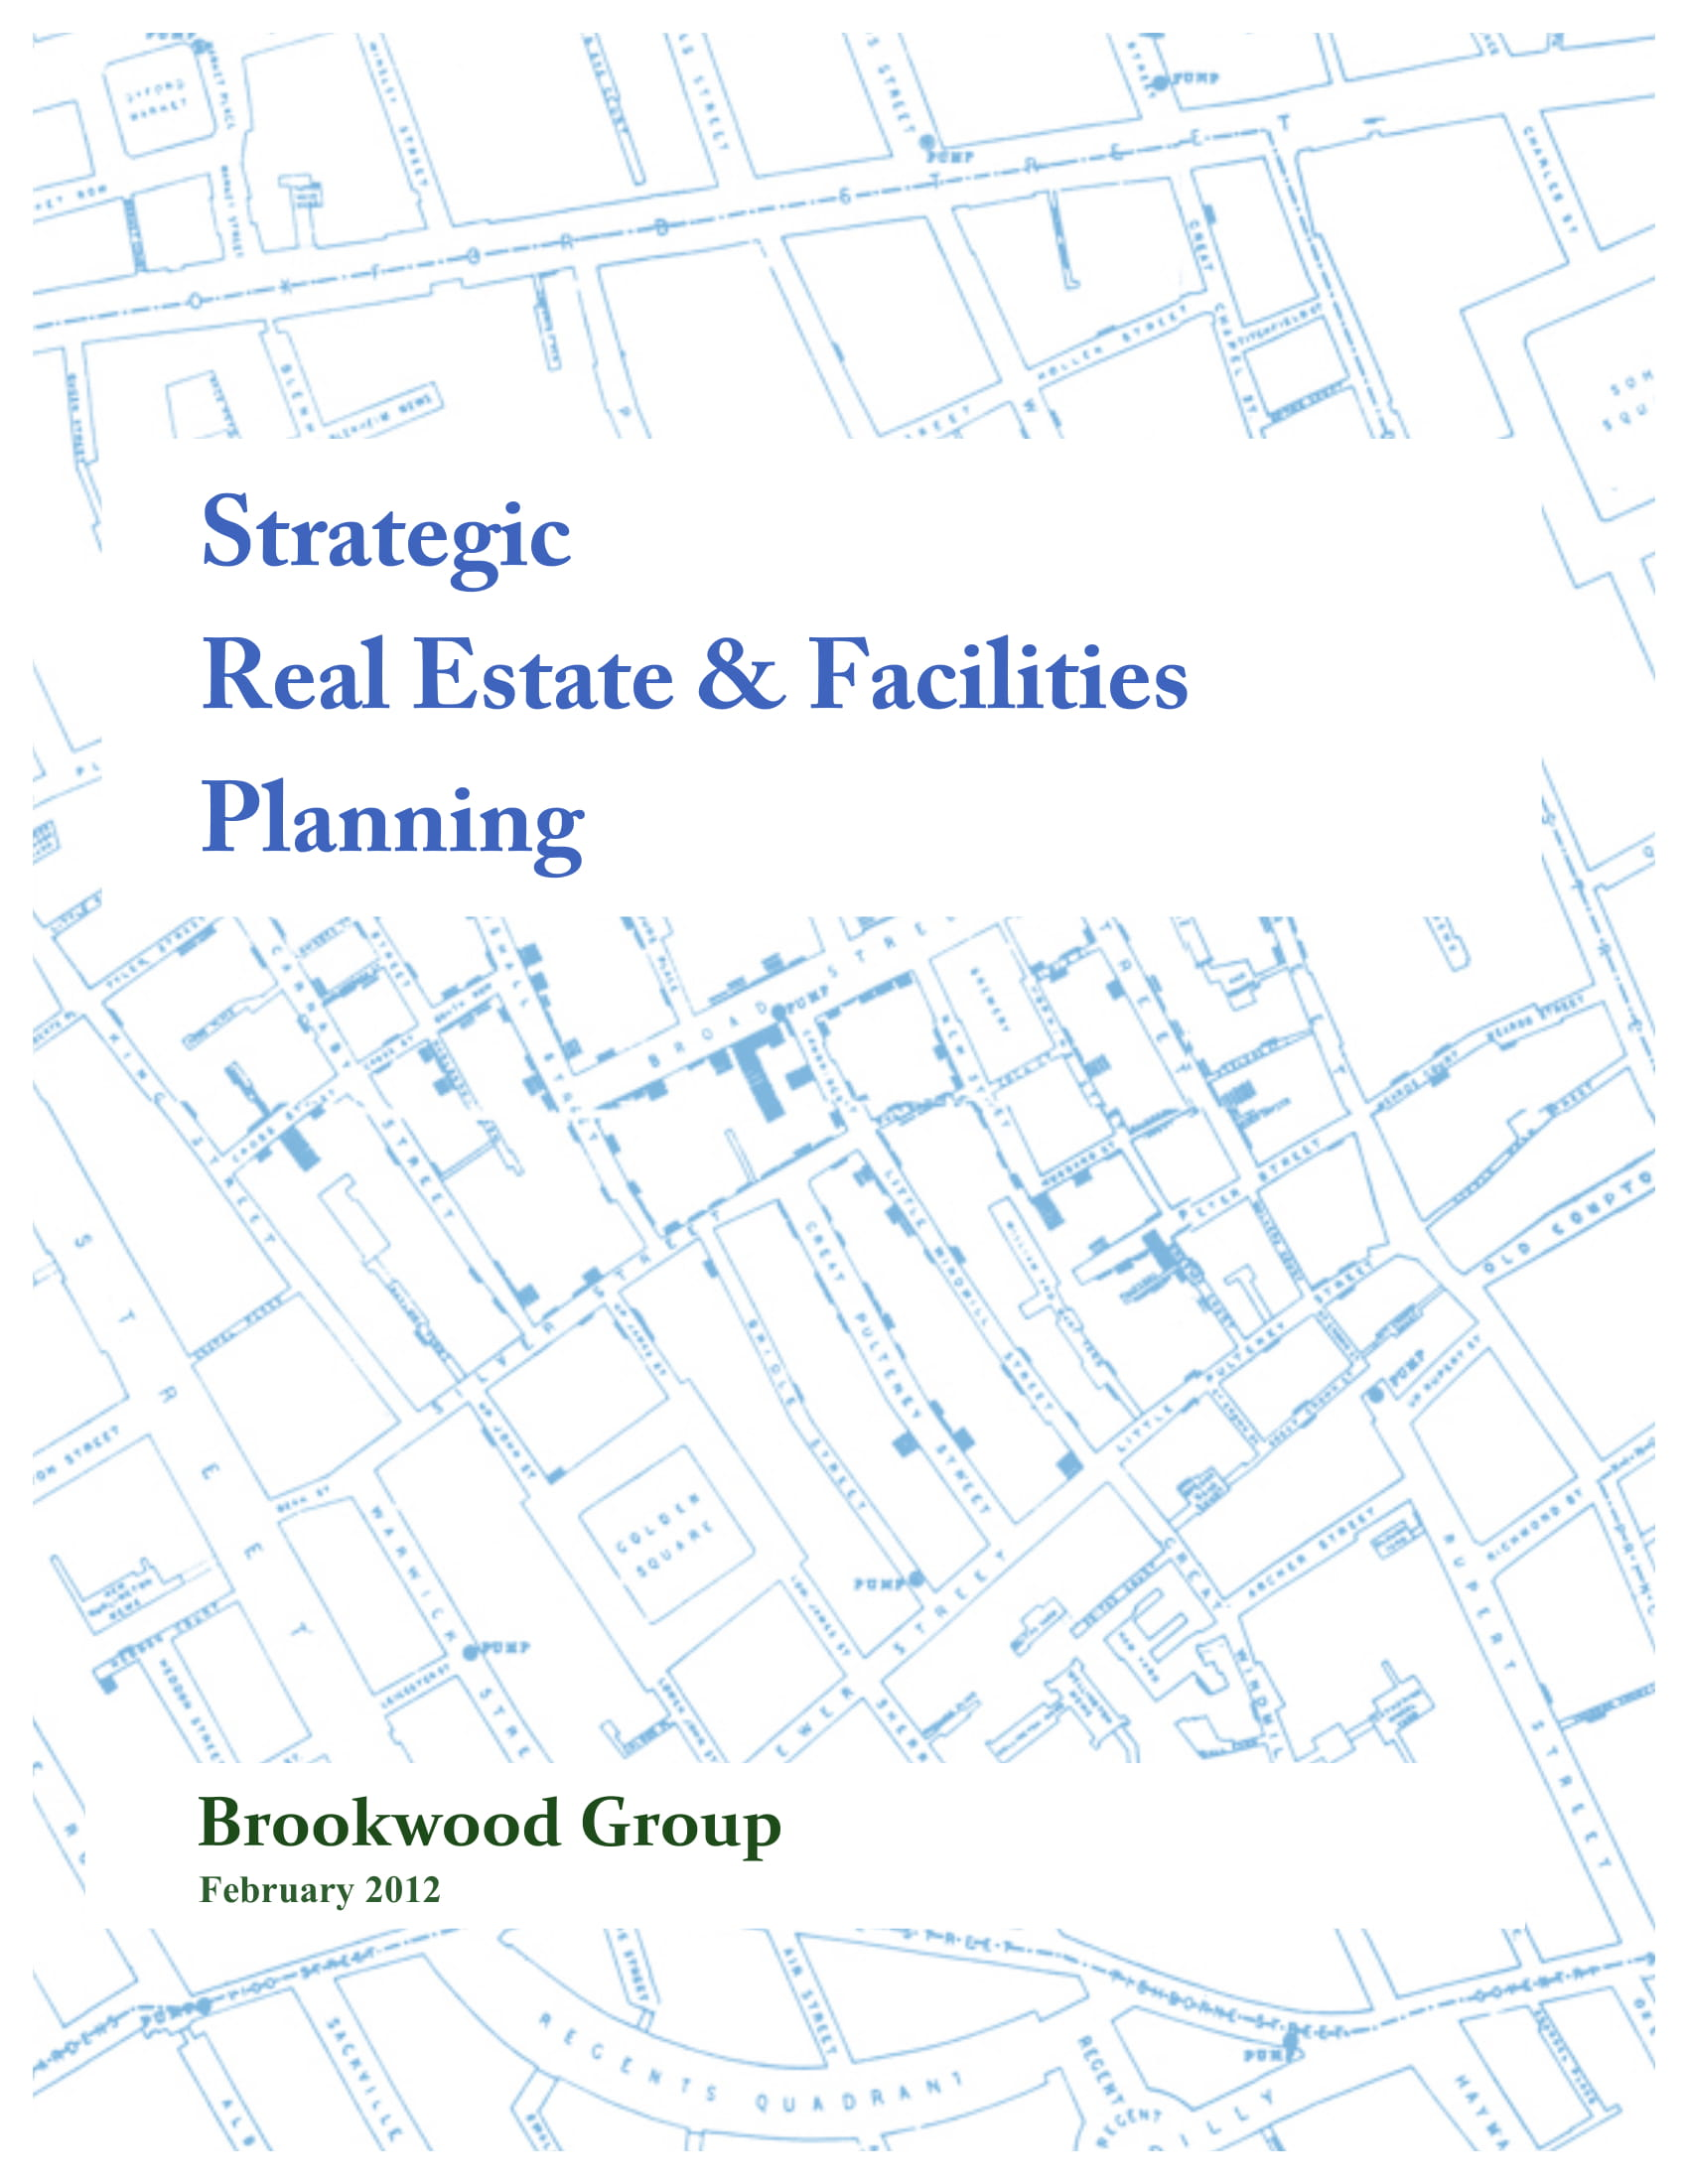 strategic real estate and facilities planning example 01